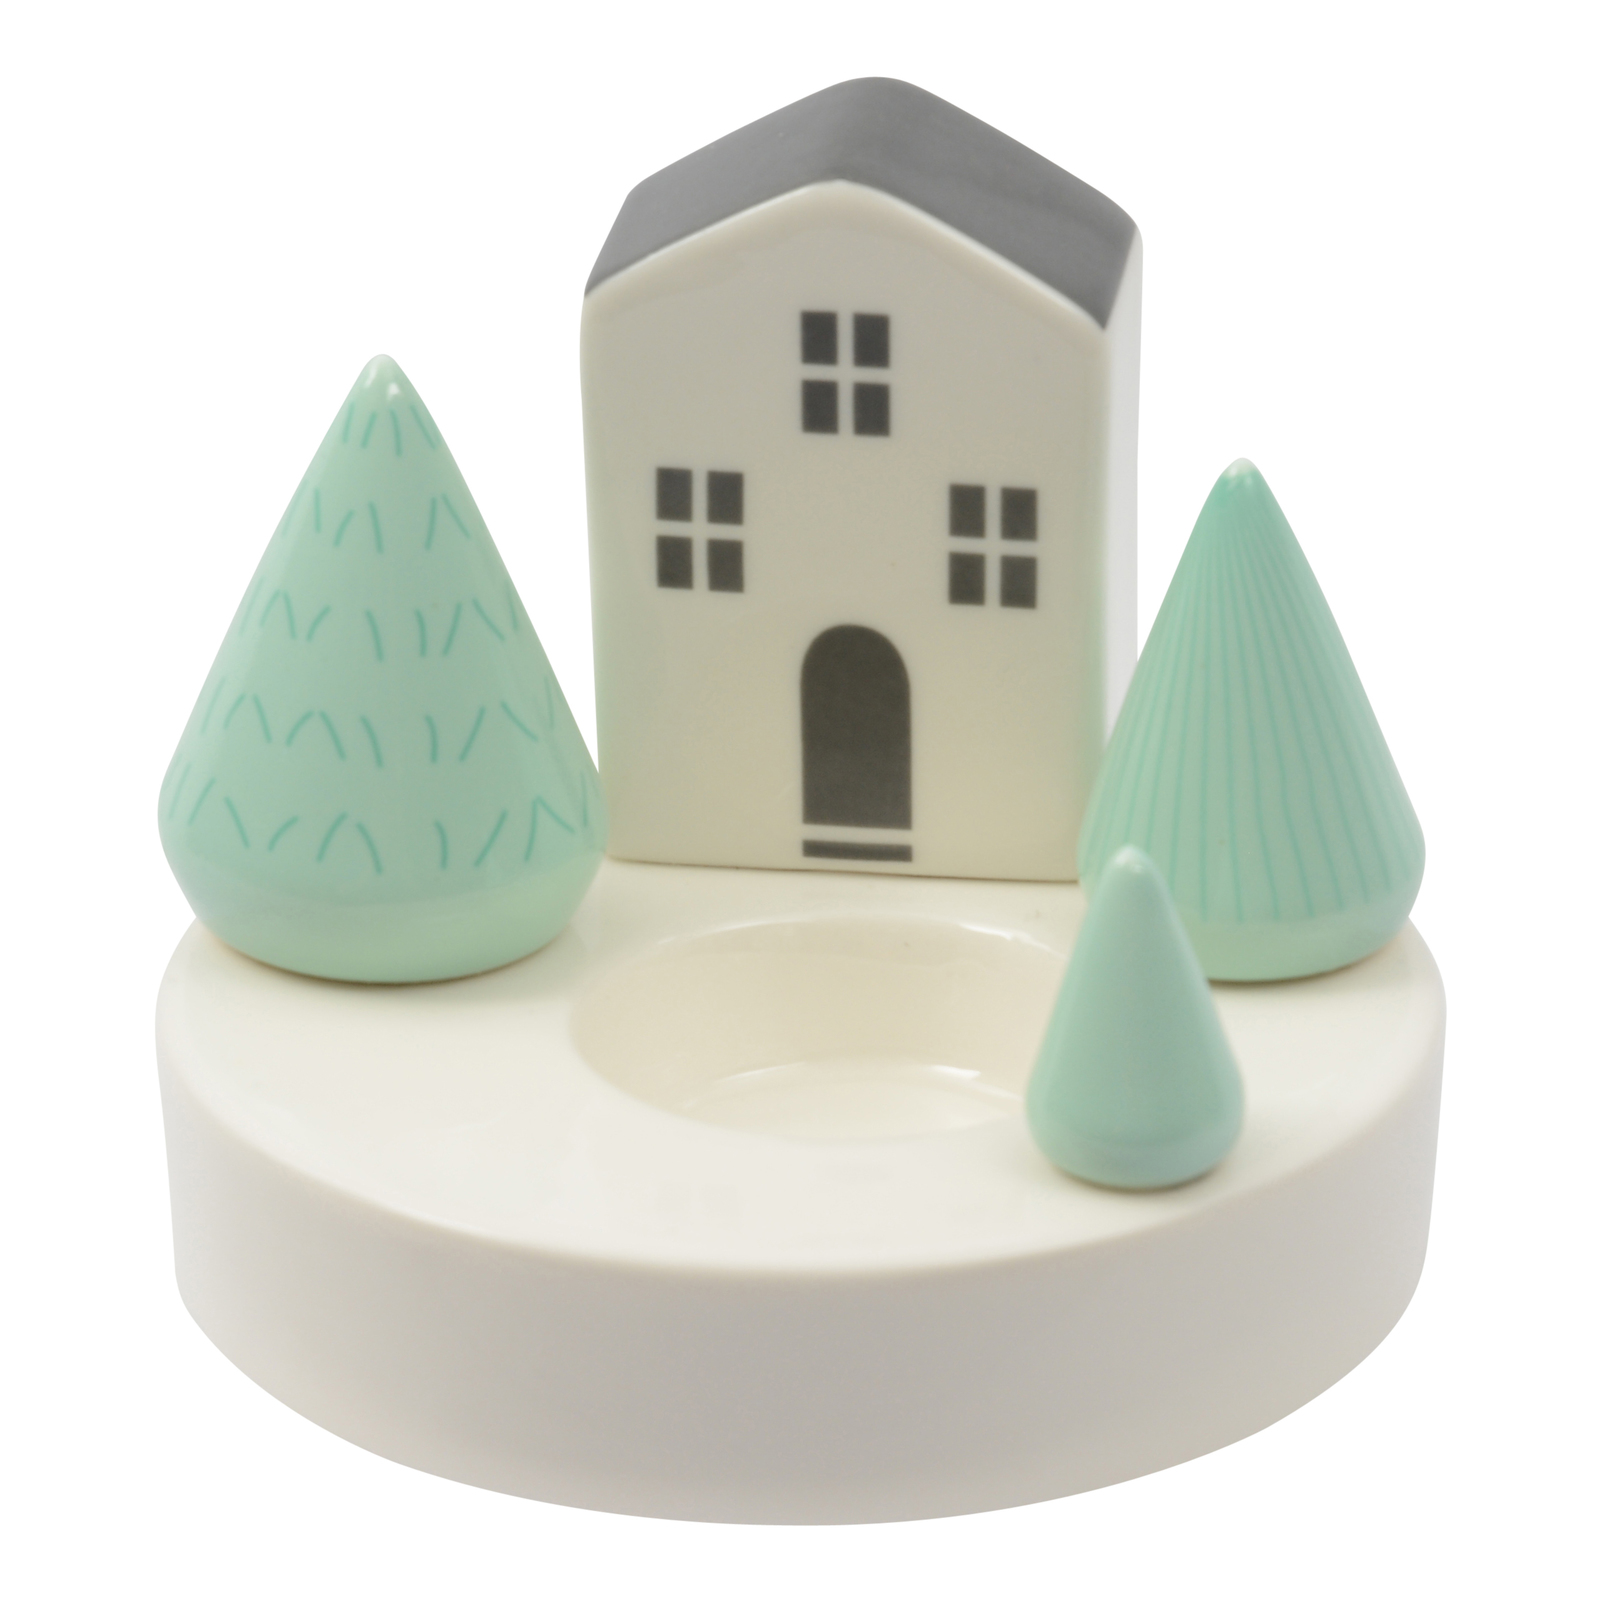 Ceramic Tealight Holder - House with 3 Trees image